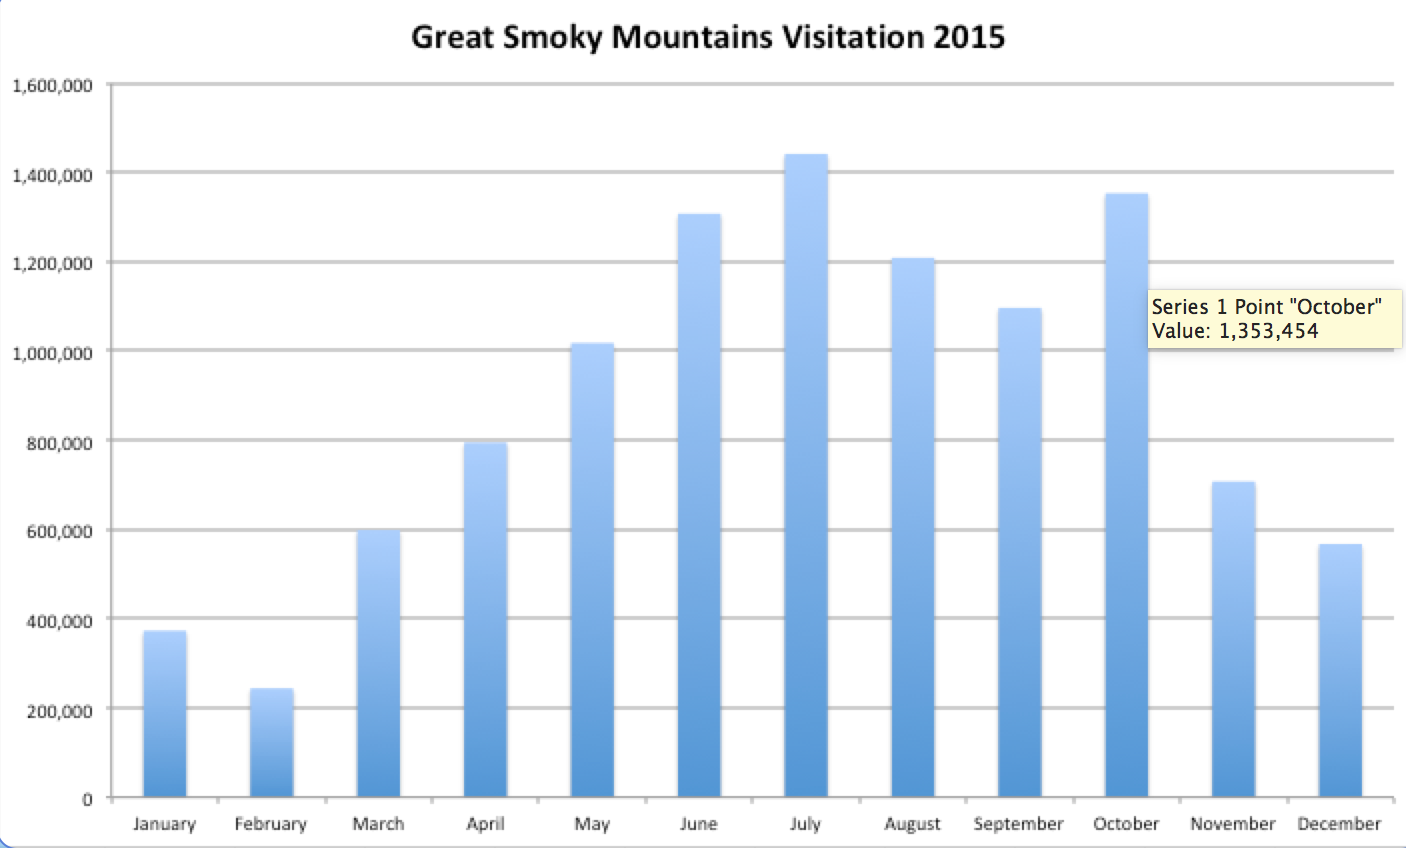 Great Smoky Mountains Visitation By Month